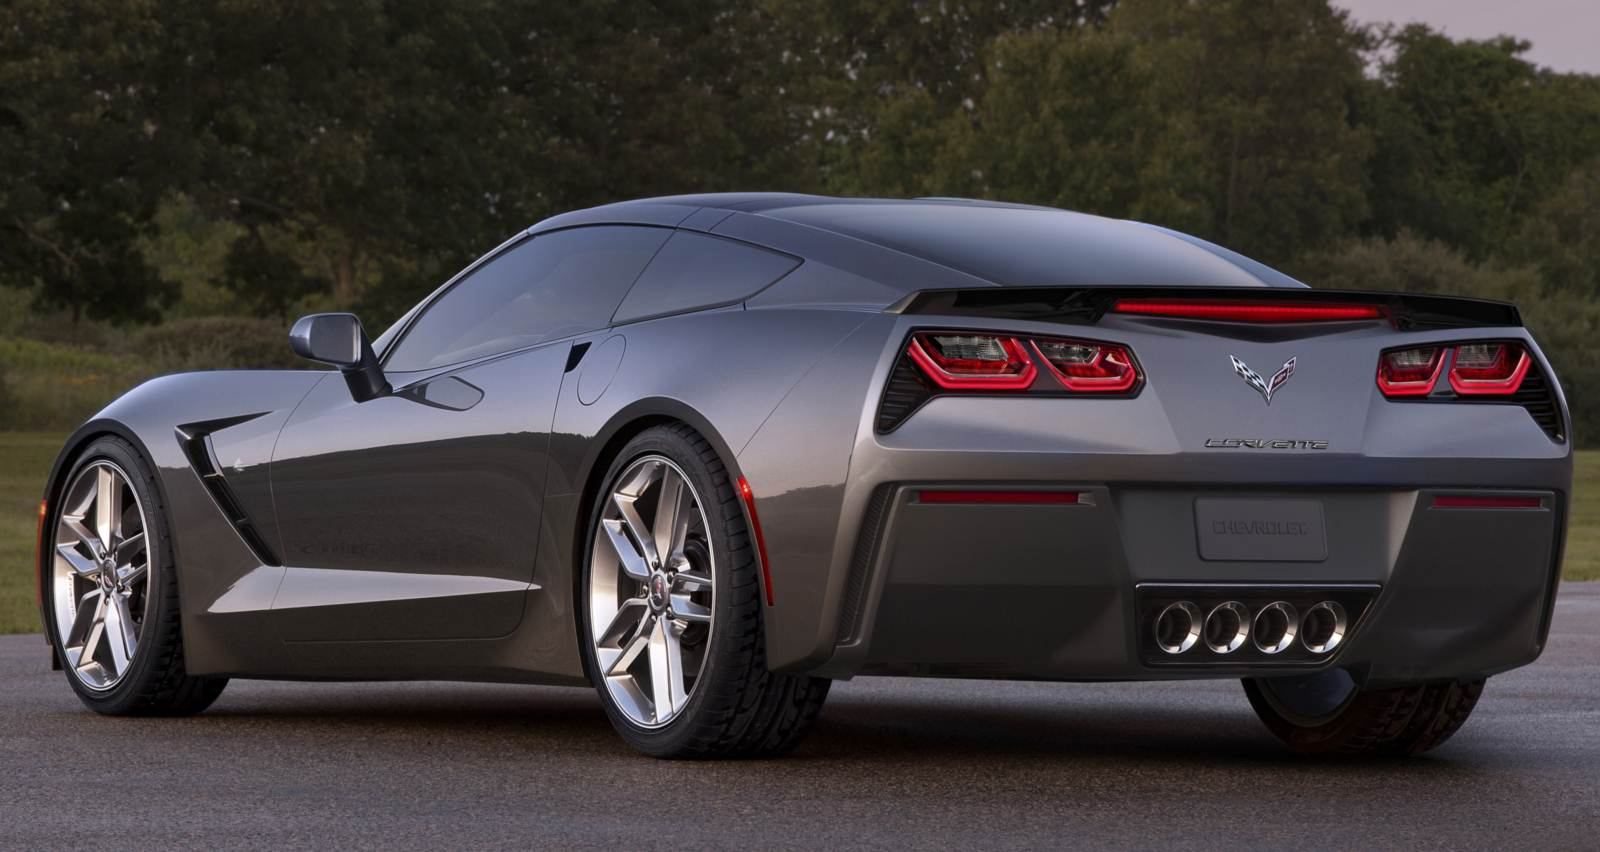 chevrolet corvette stingray 2014 fotos e informa es car blog br. Black Bedroom Furniture Sets. Home Design Ideas